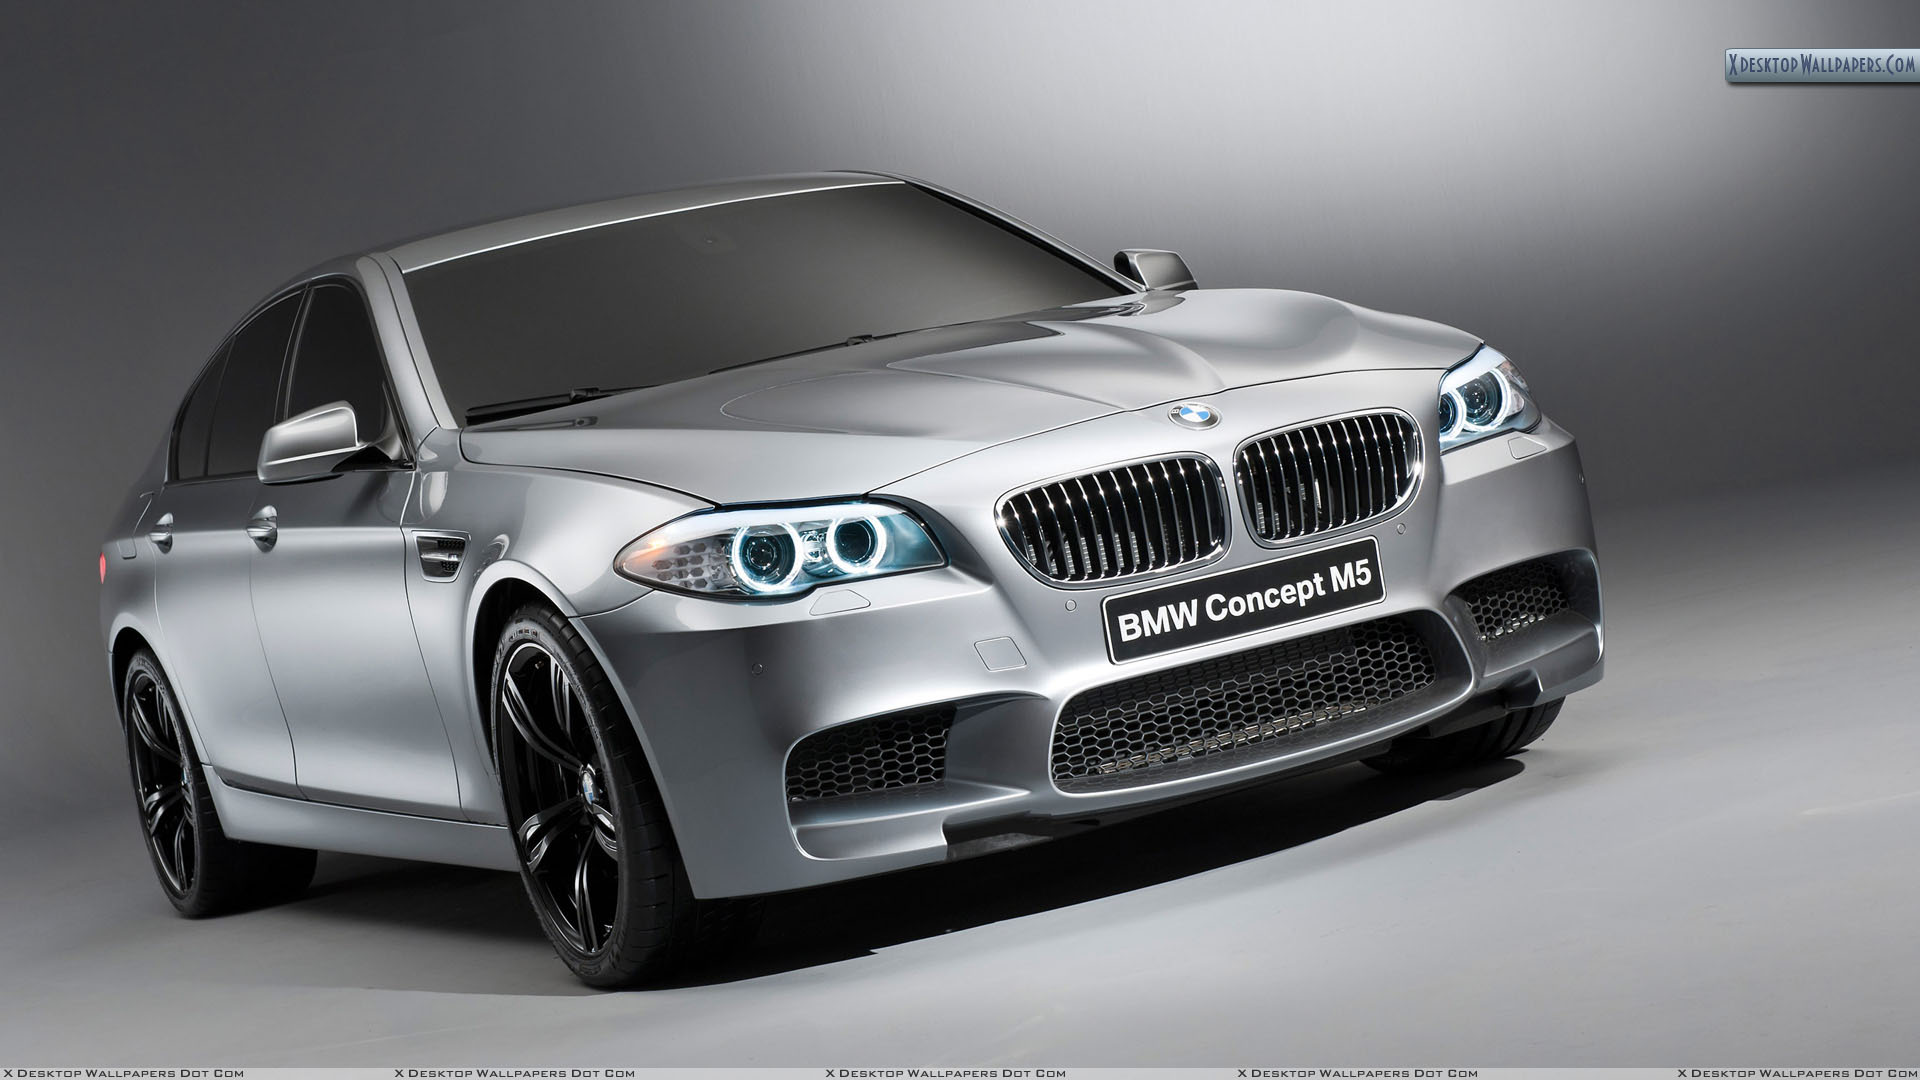 2012 Bmw M5 Concept Side Front View Wallpaper